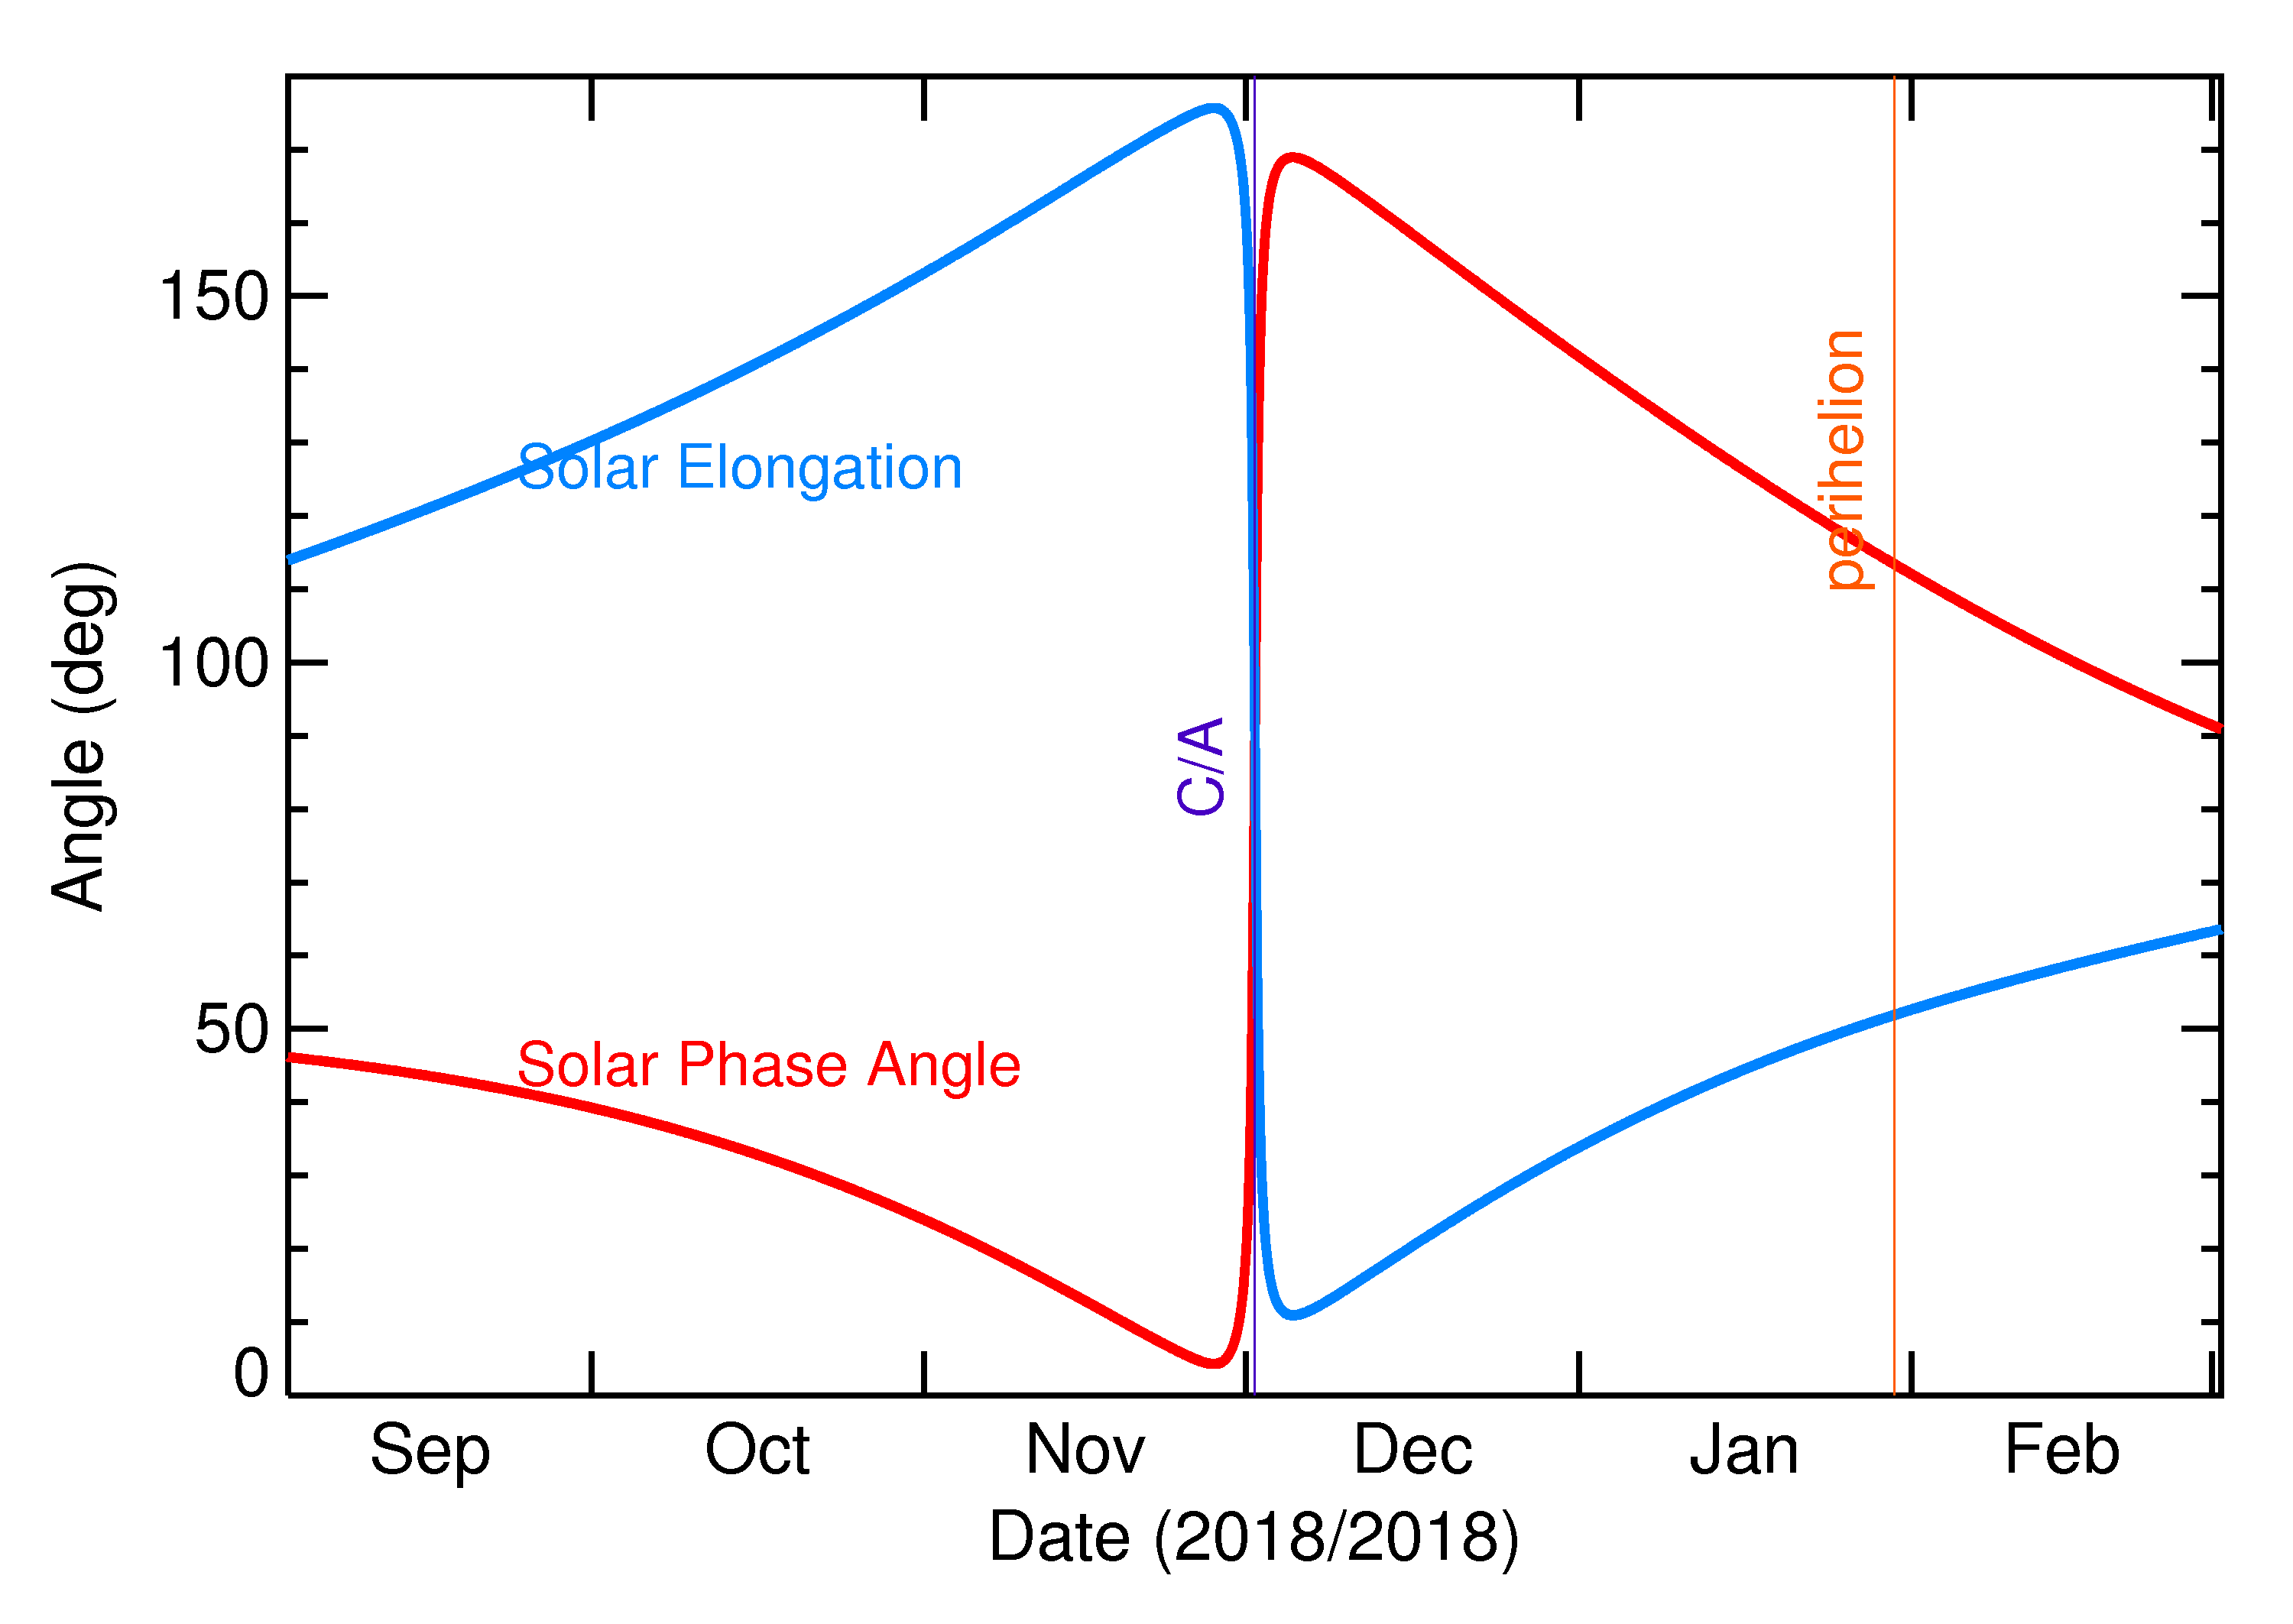 Solar Elongation and Solar Phase Angle of 2018 WG2 in the months around closest approach